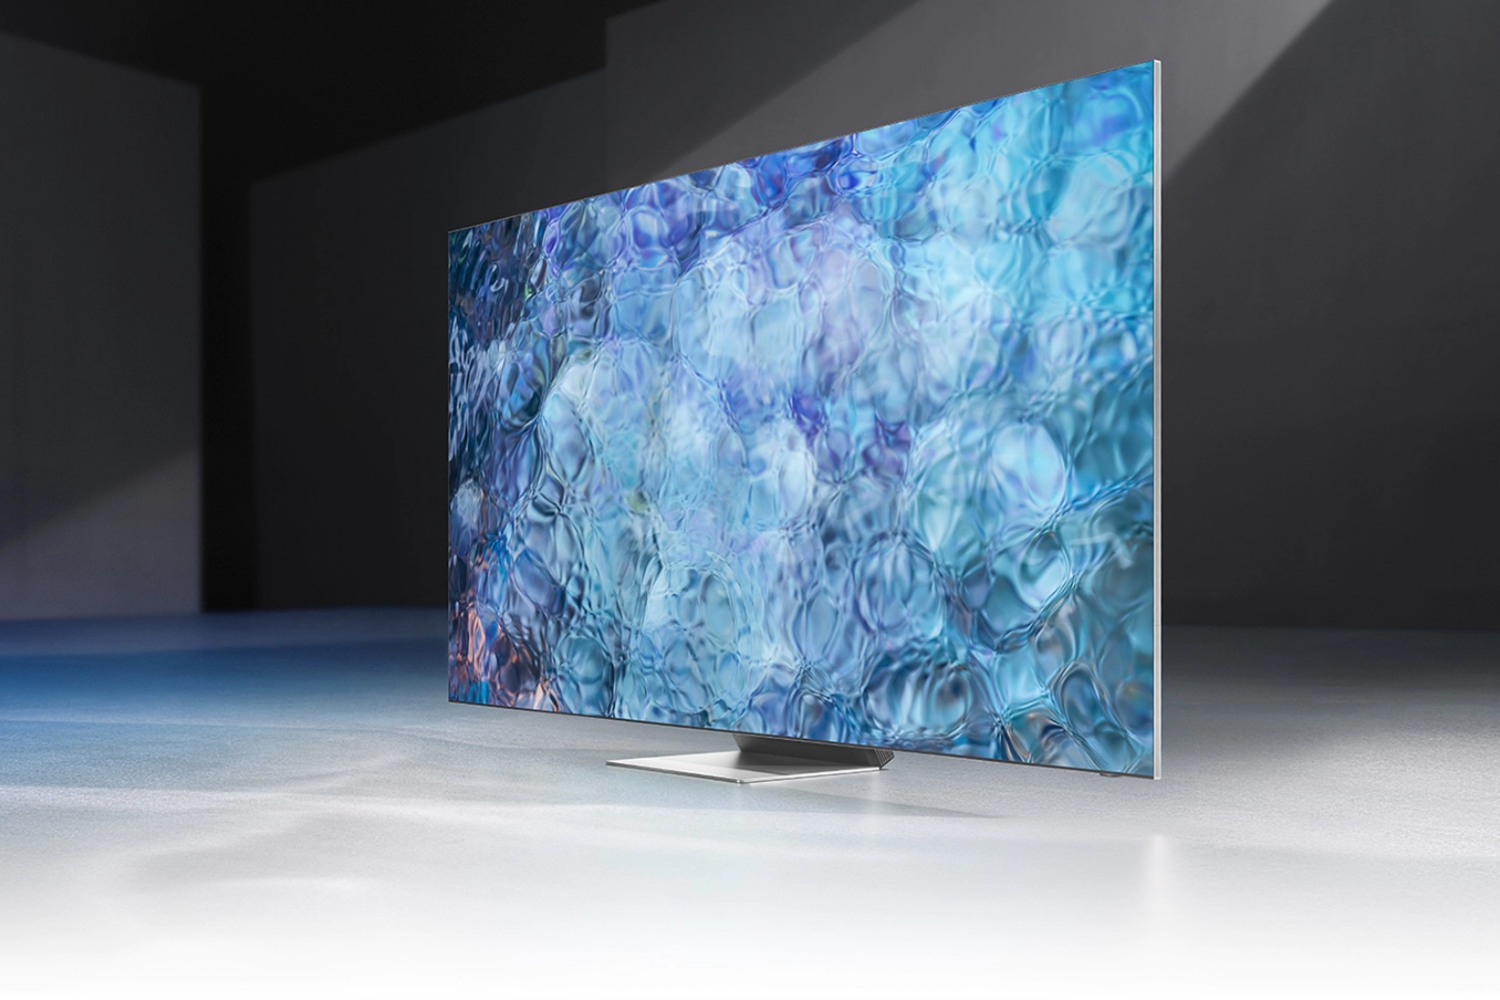 Samsung Neo QLED 8K Smart TV